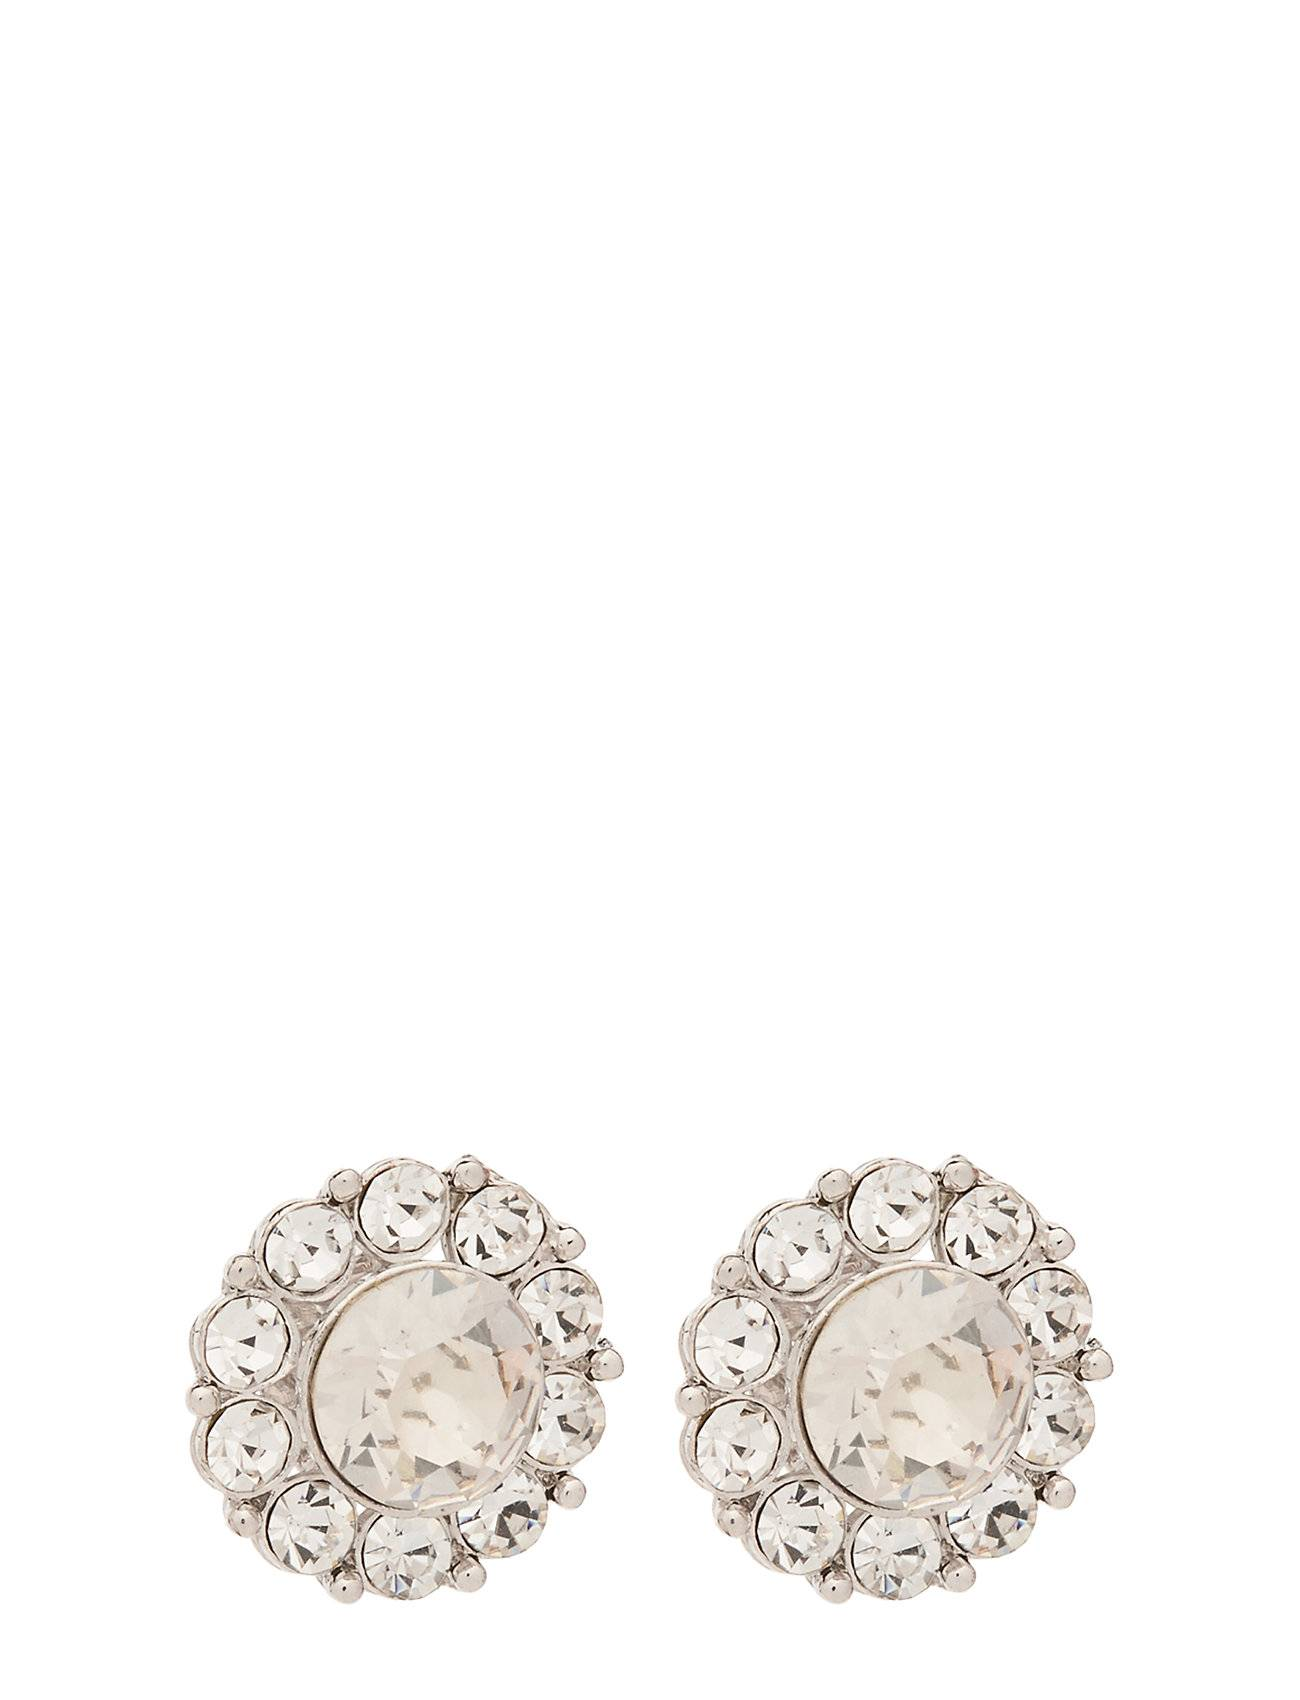 LILY AND ROSE Miss Sofia Earrings - Crystal Accessories Jewellery Earrings Studs Hopea LILY AND ROSE